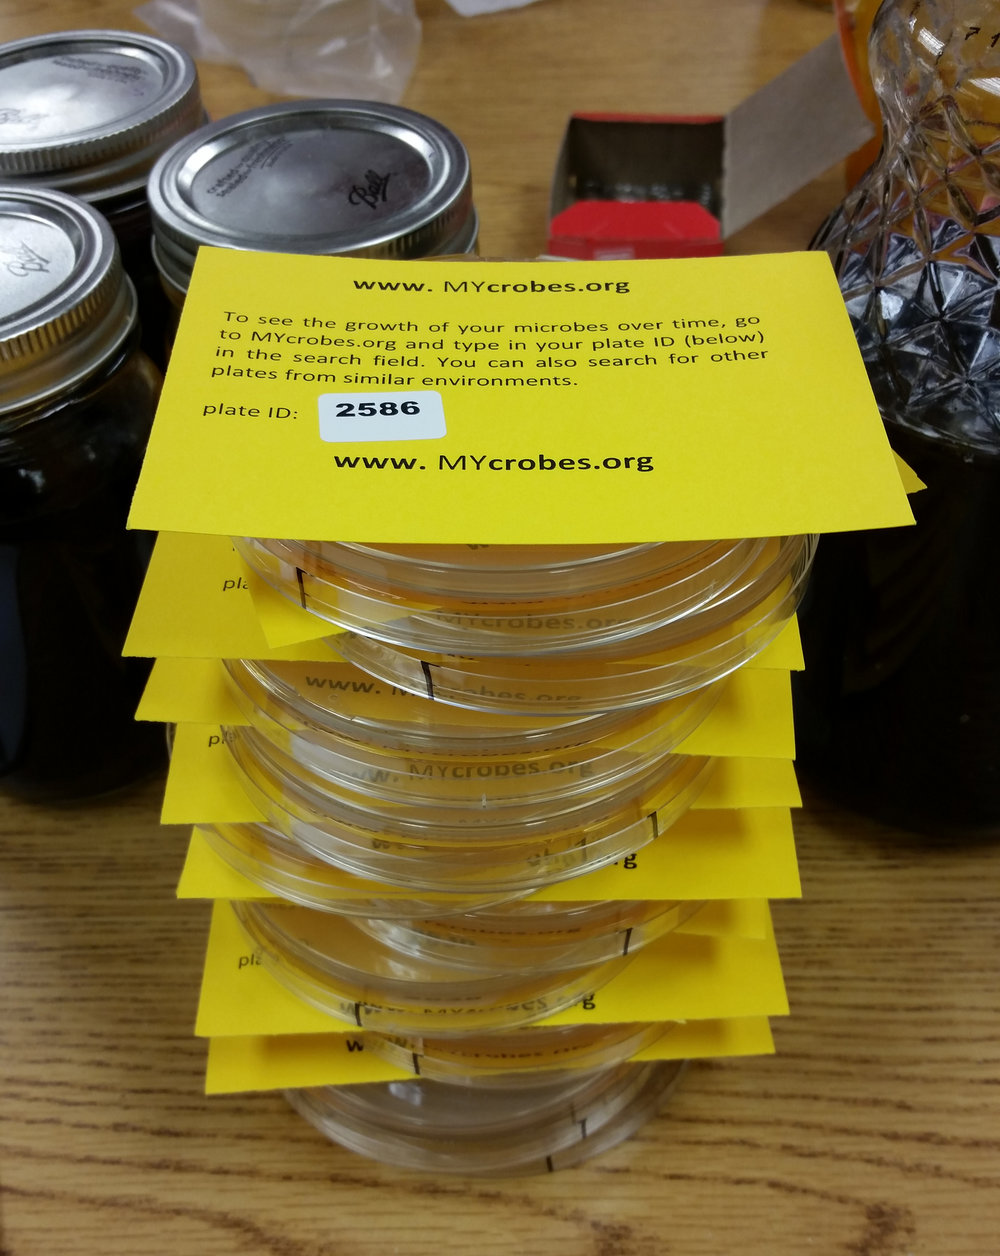 Agar plates - from the mycrobe project streaked by students at a local elementary school during a GIVE-run STEM night event.